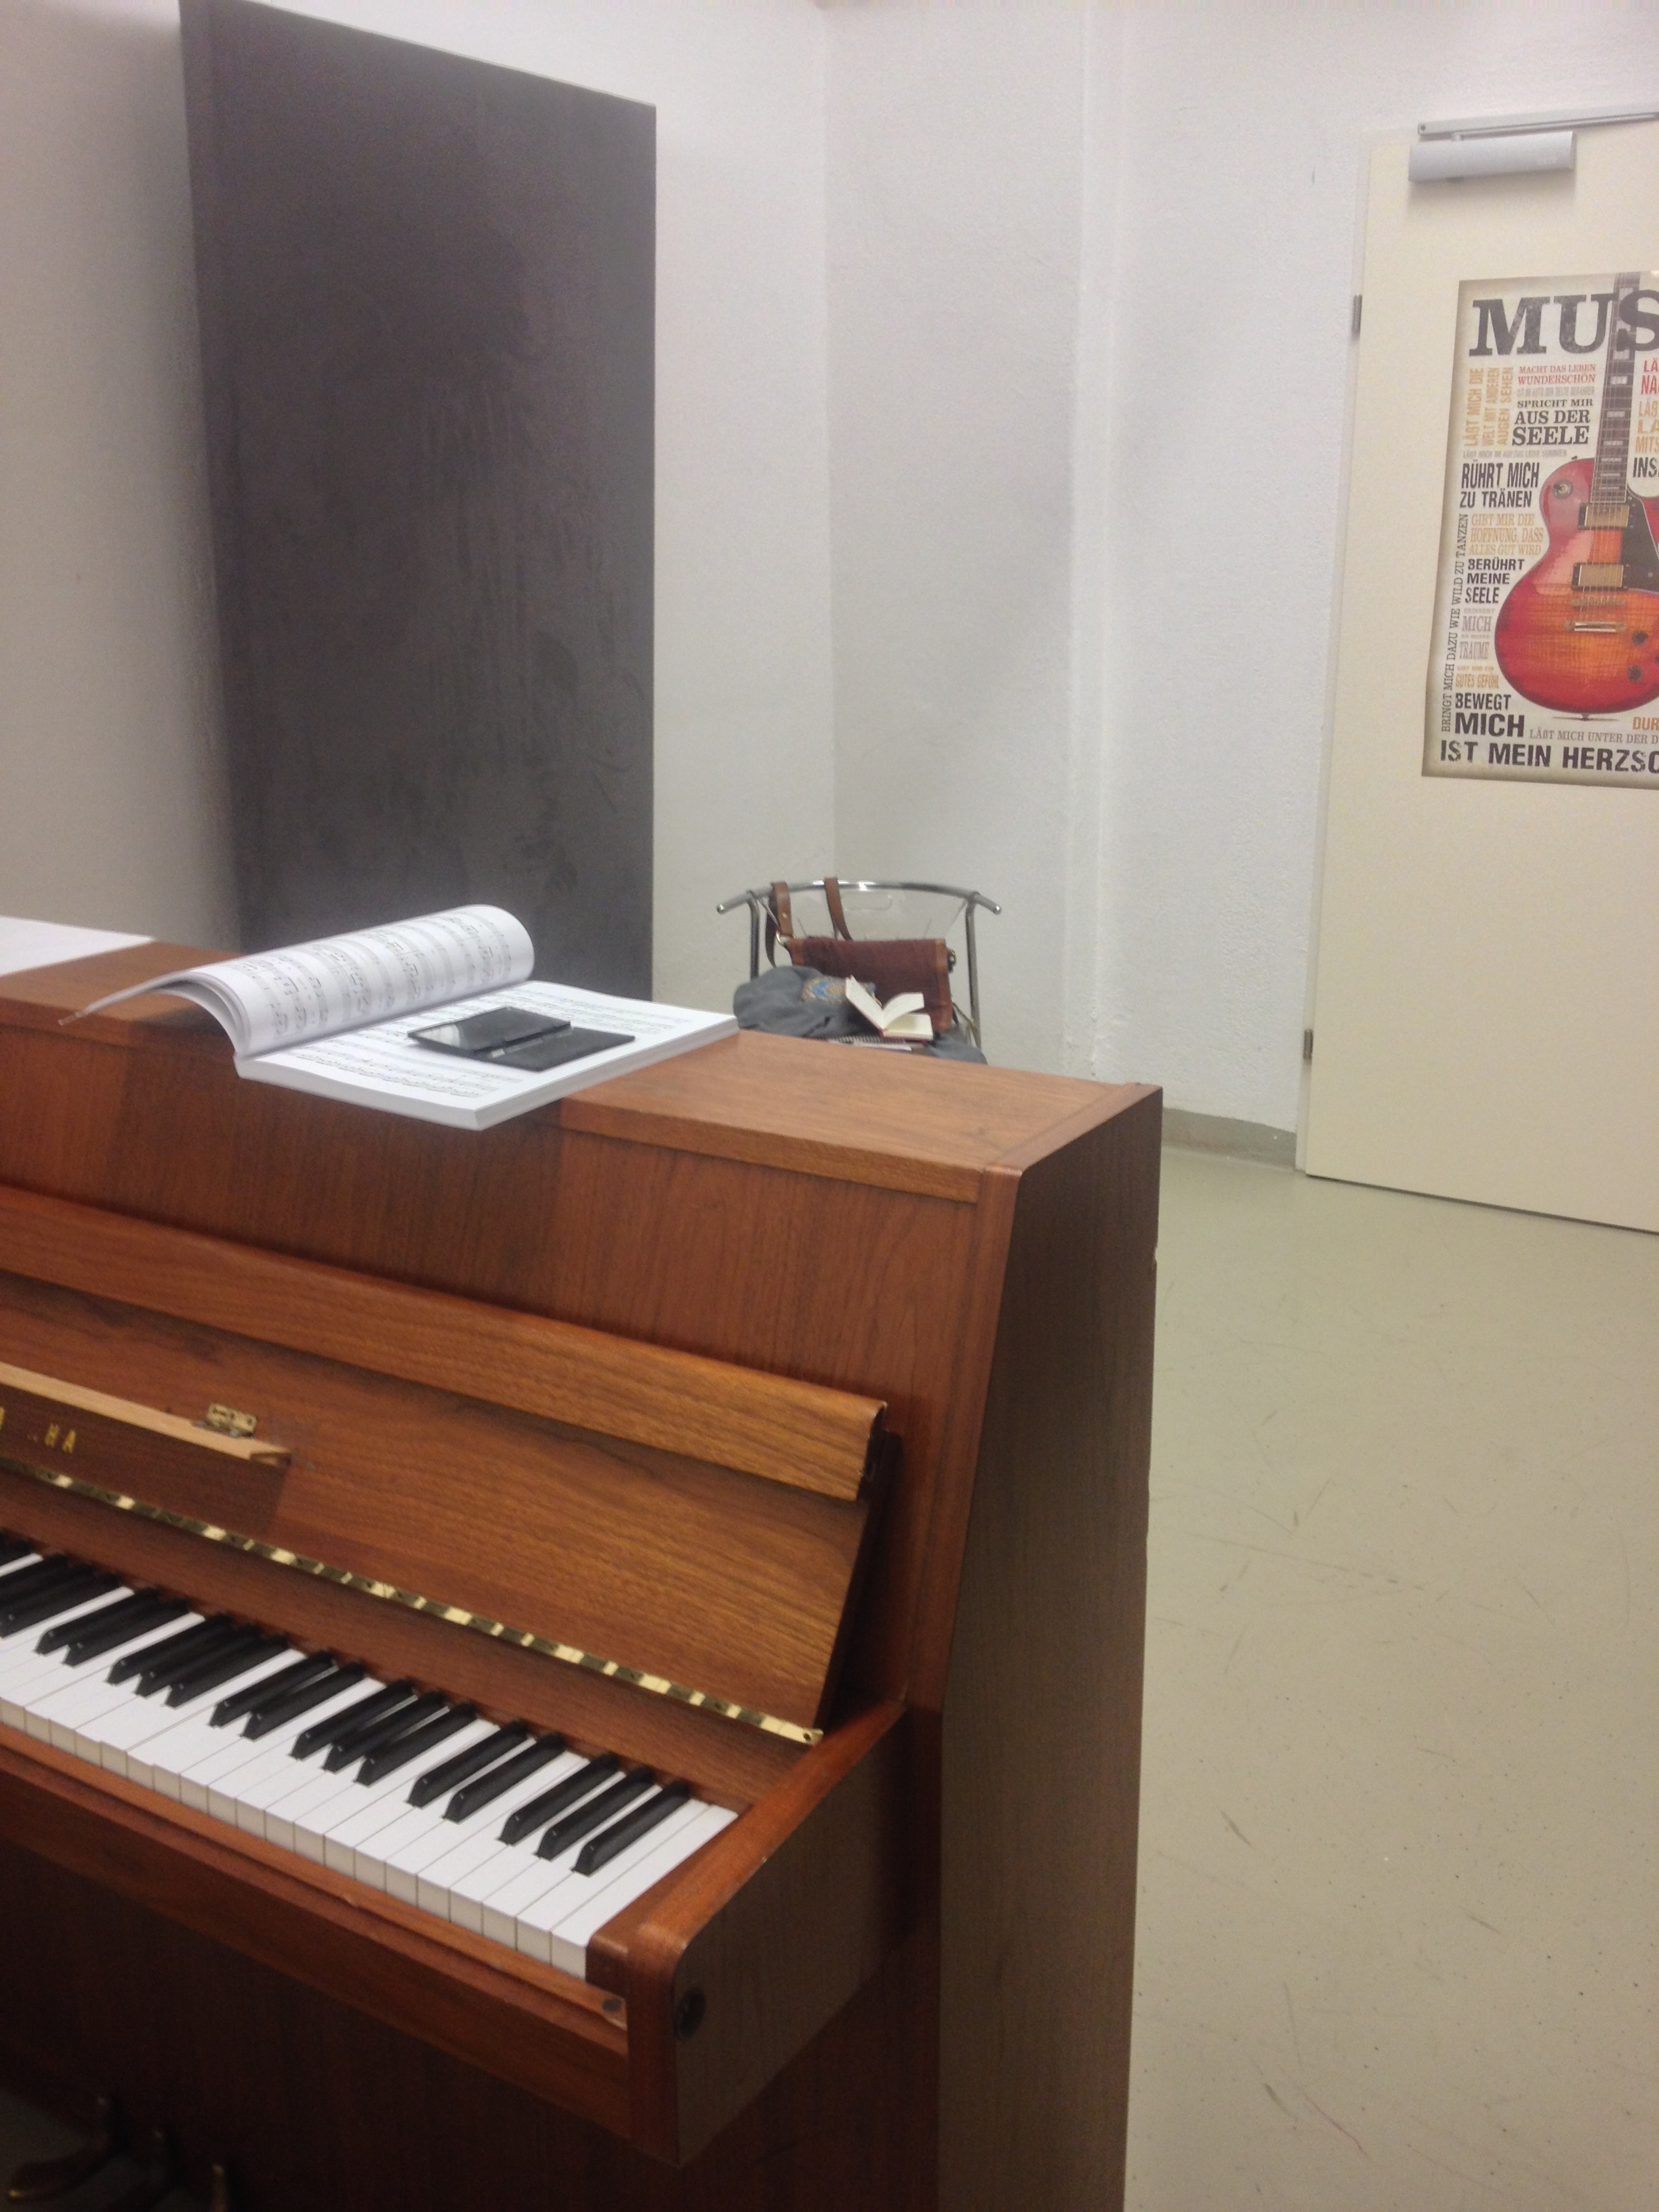 In case anyone was wondering what our practice rooms are like: they're in the basement.